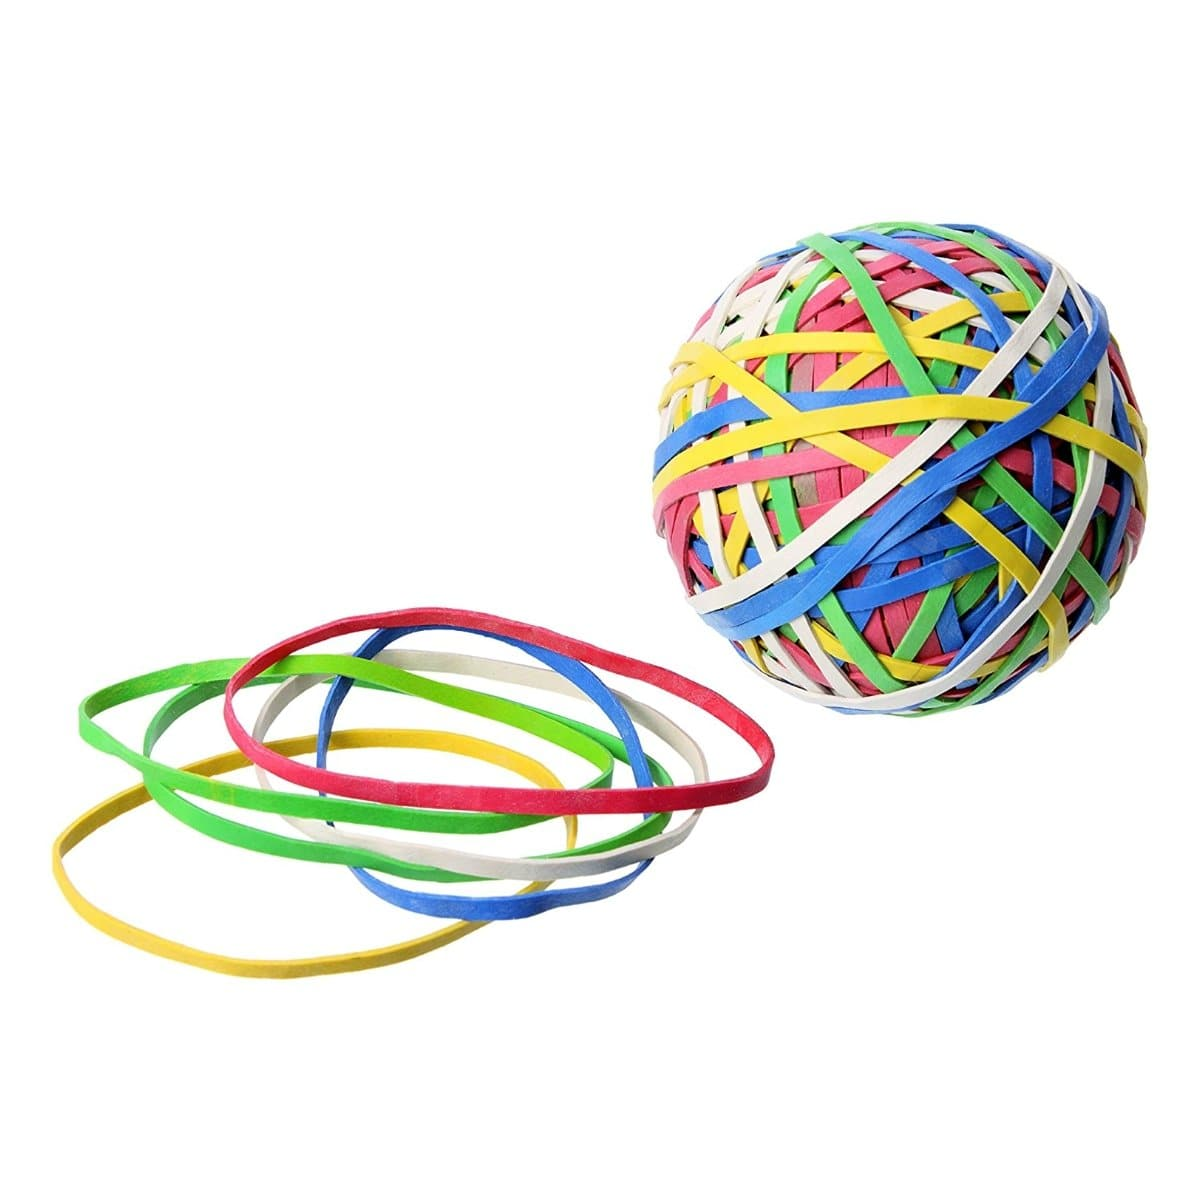 Laufer Rondella, Rubber Band Ball, Natural Rubber, 3mm, 200 Bands